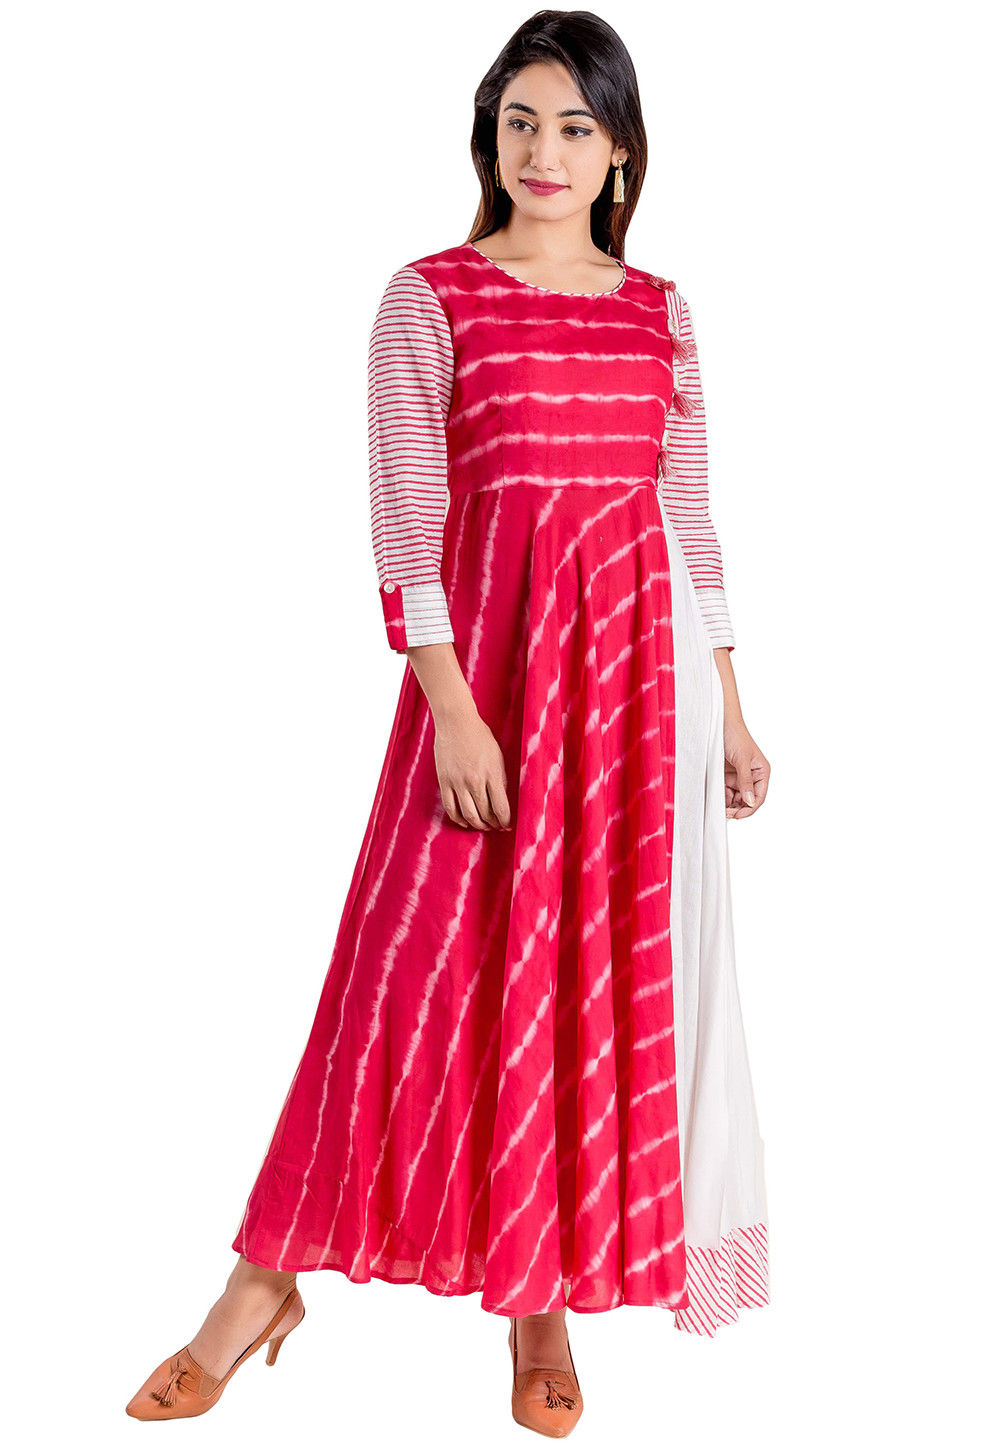 Tie N Dye Modal Satin Long Kurta in Fuchsia and white